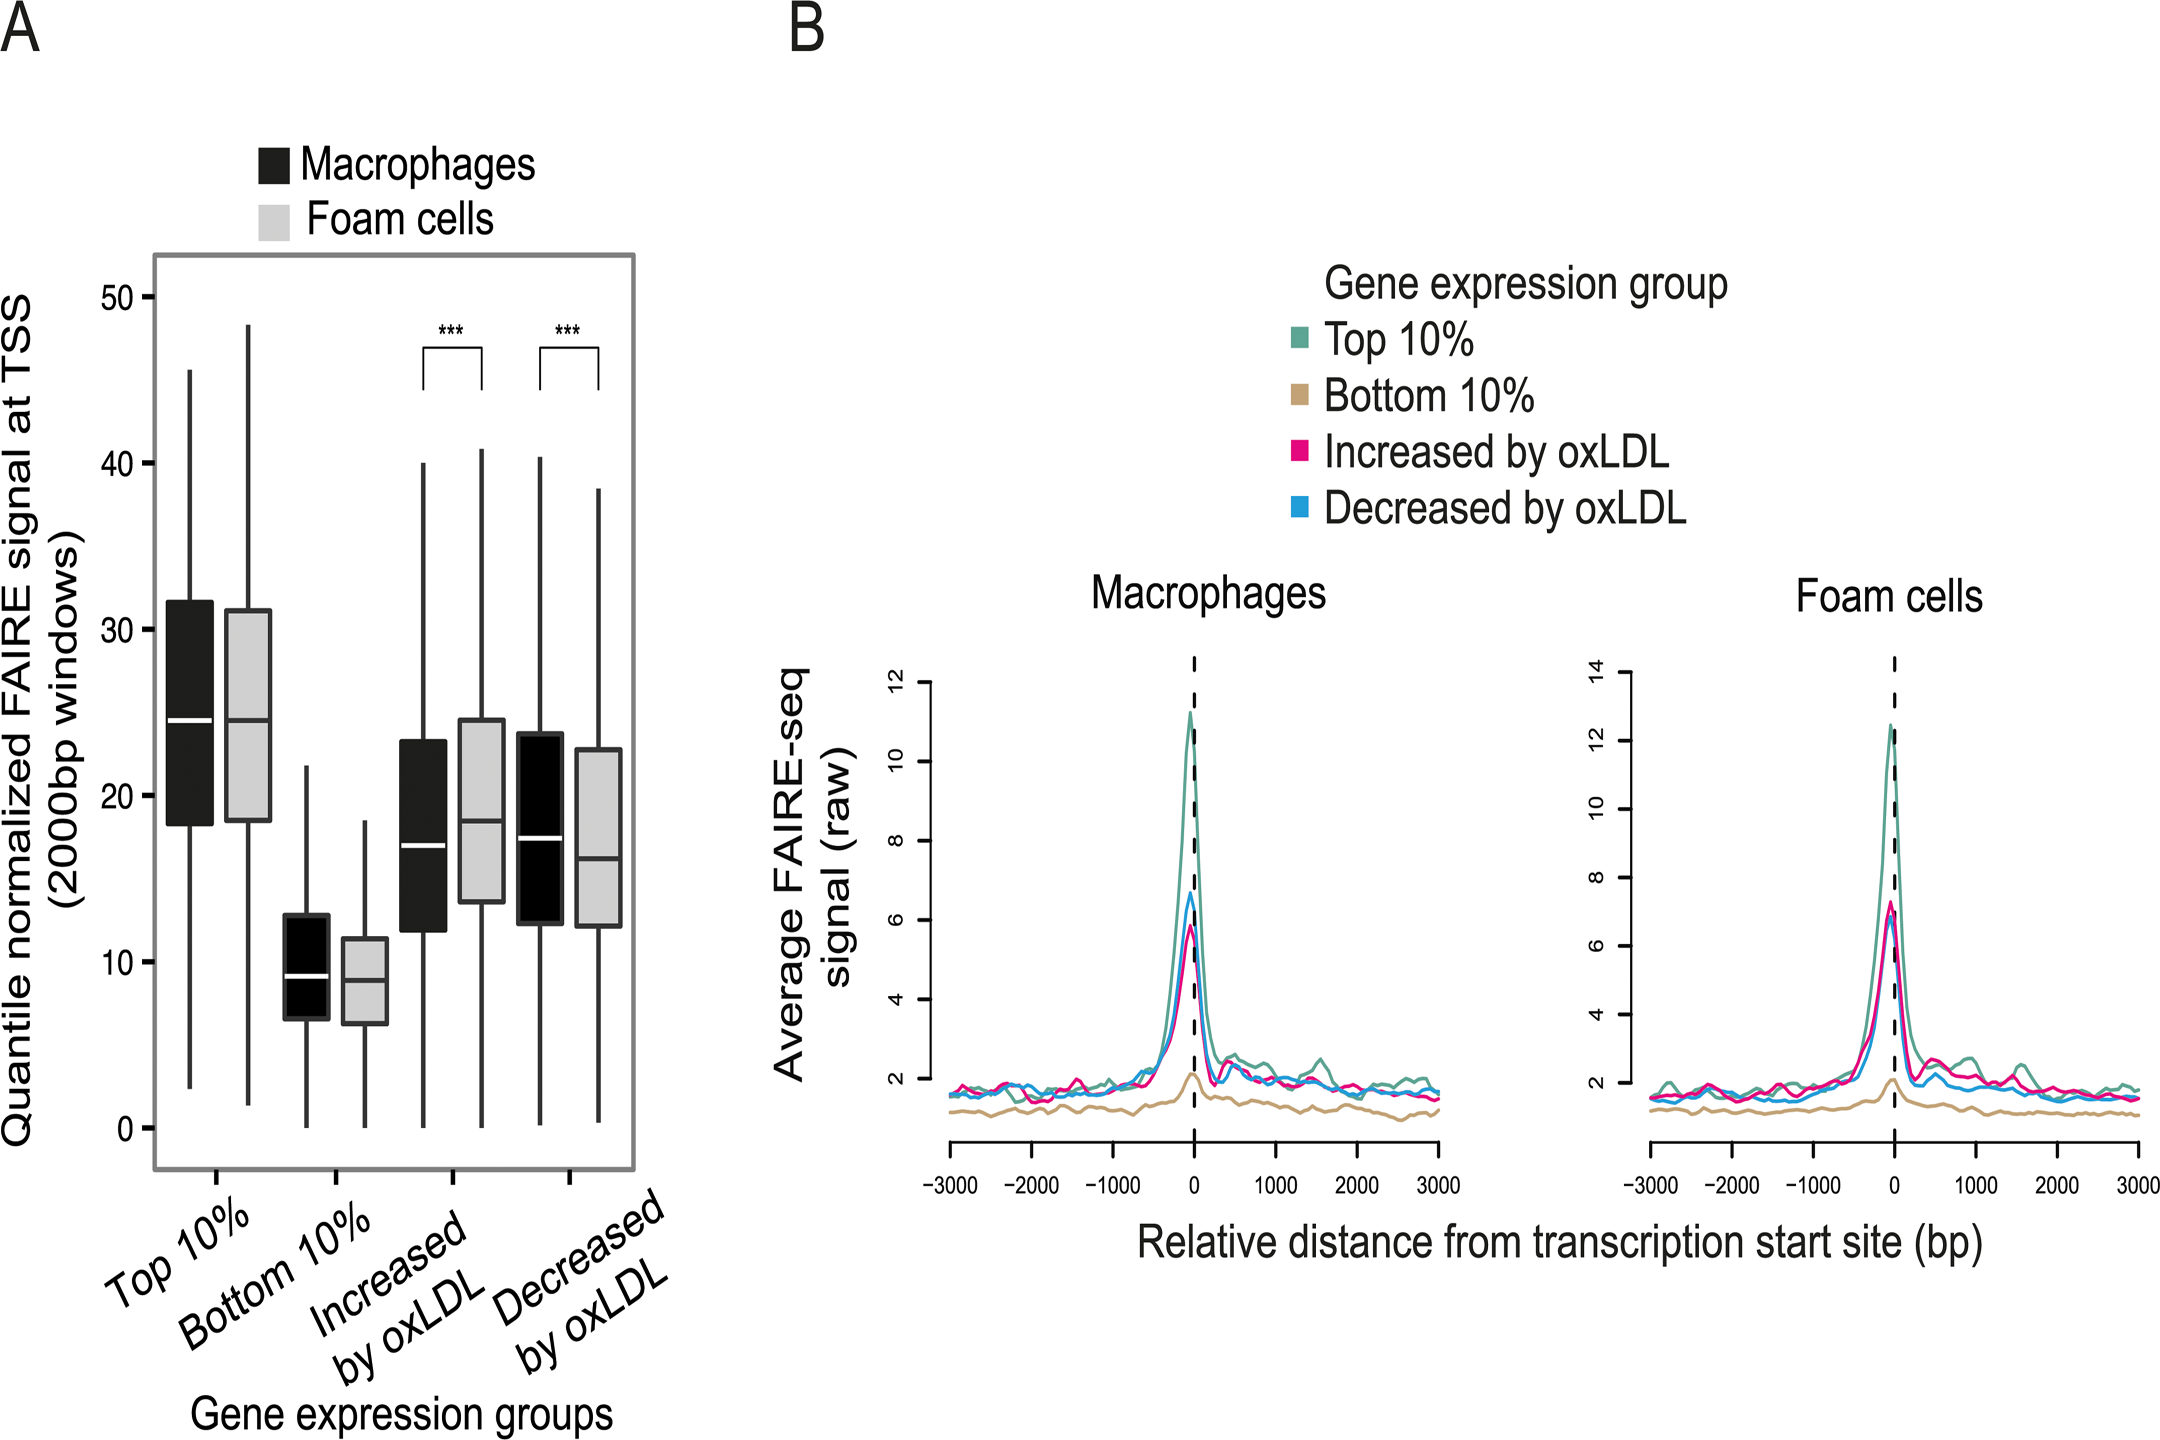 OxLDL-induced changes in chromatin structure determined by FAIRE-seq.